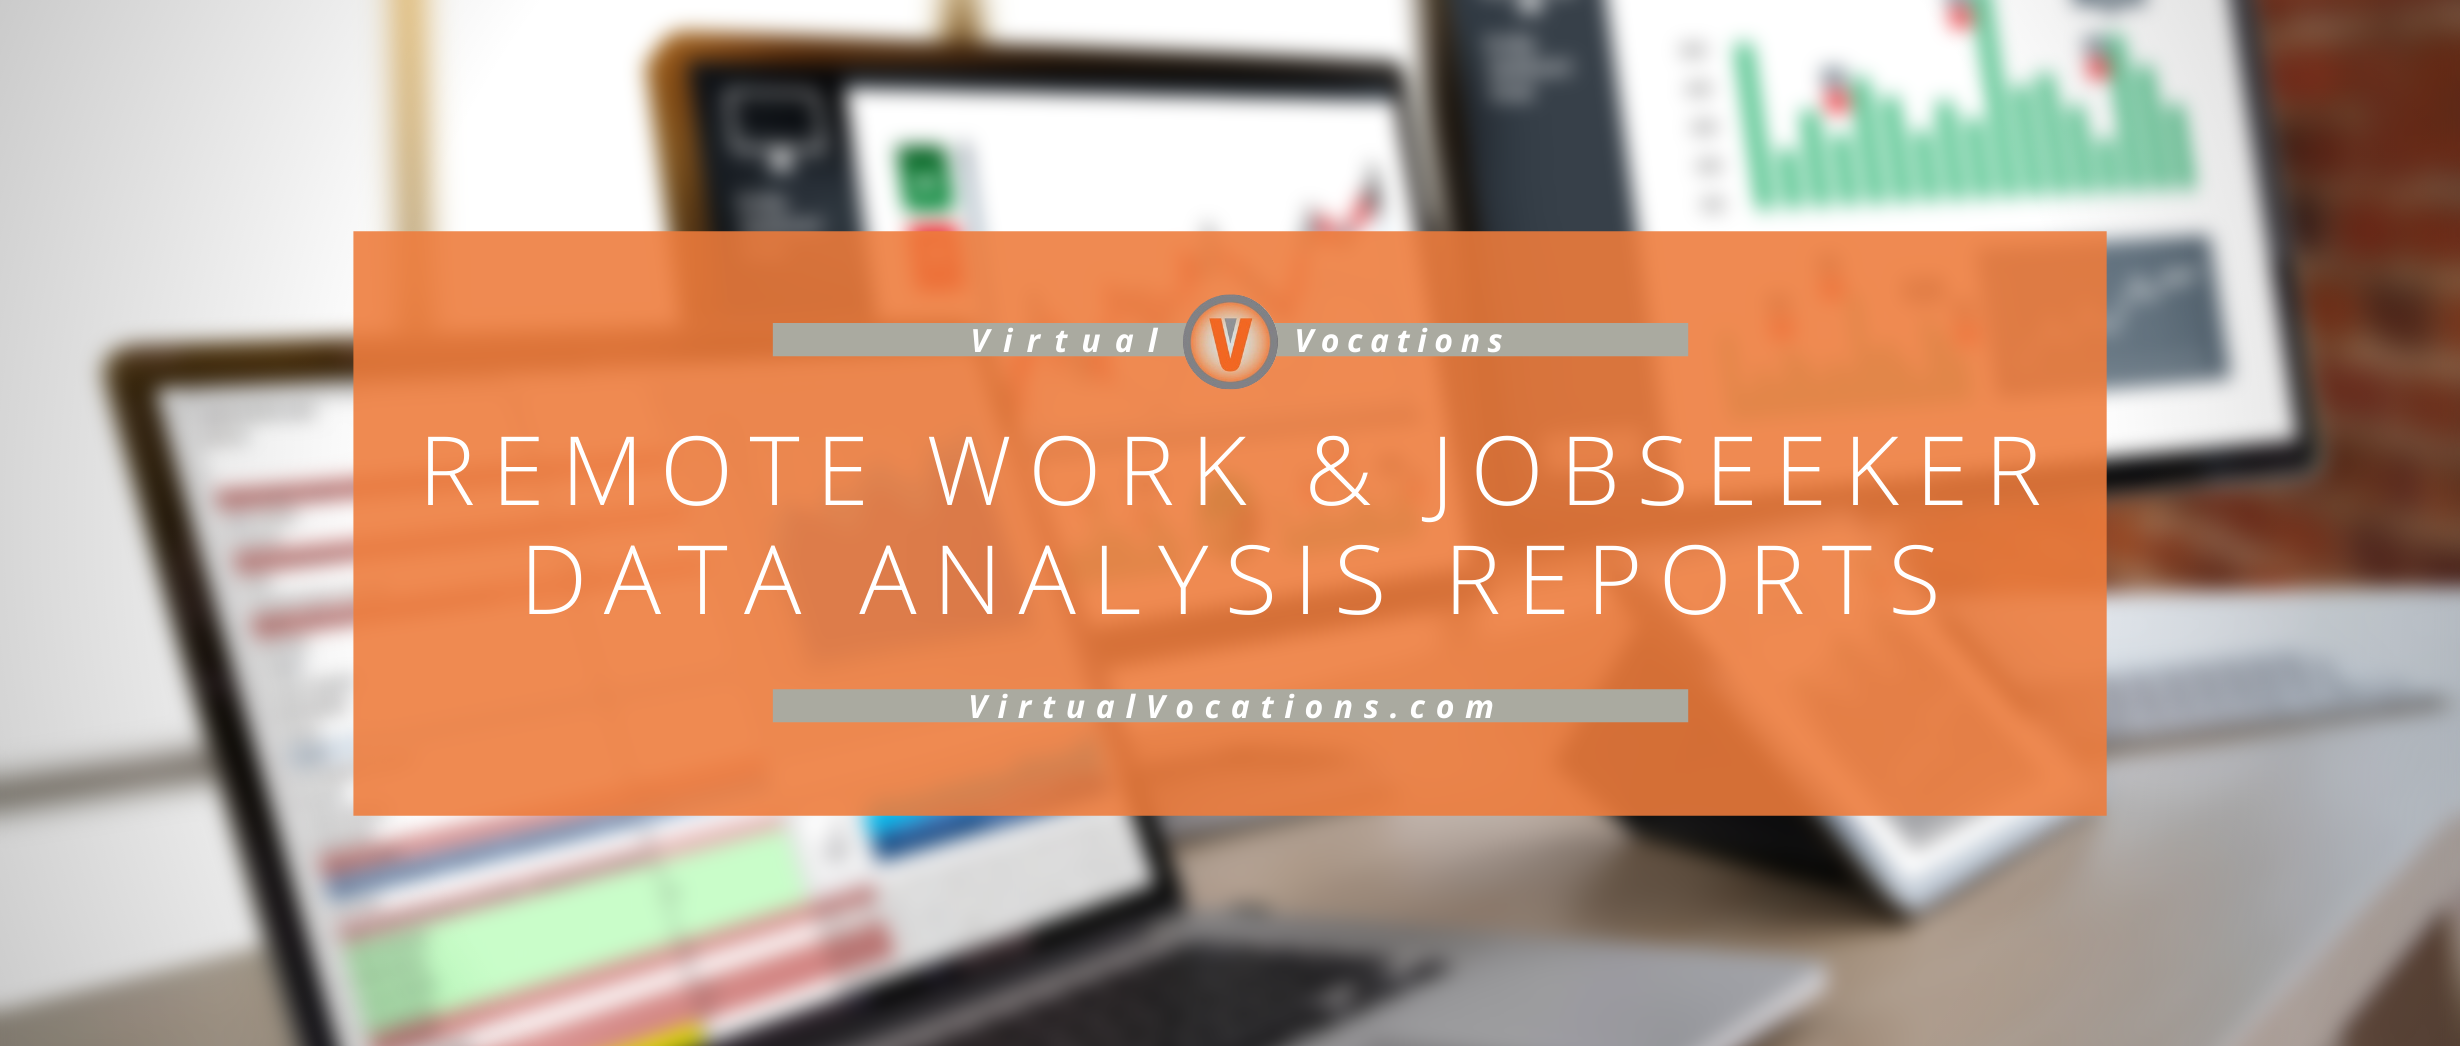 Virtual Vocations - Remote Work and Jobseeker Data Analysis Reports